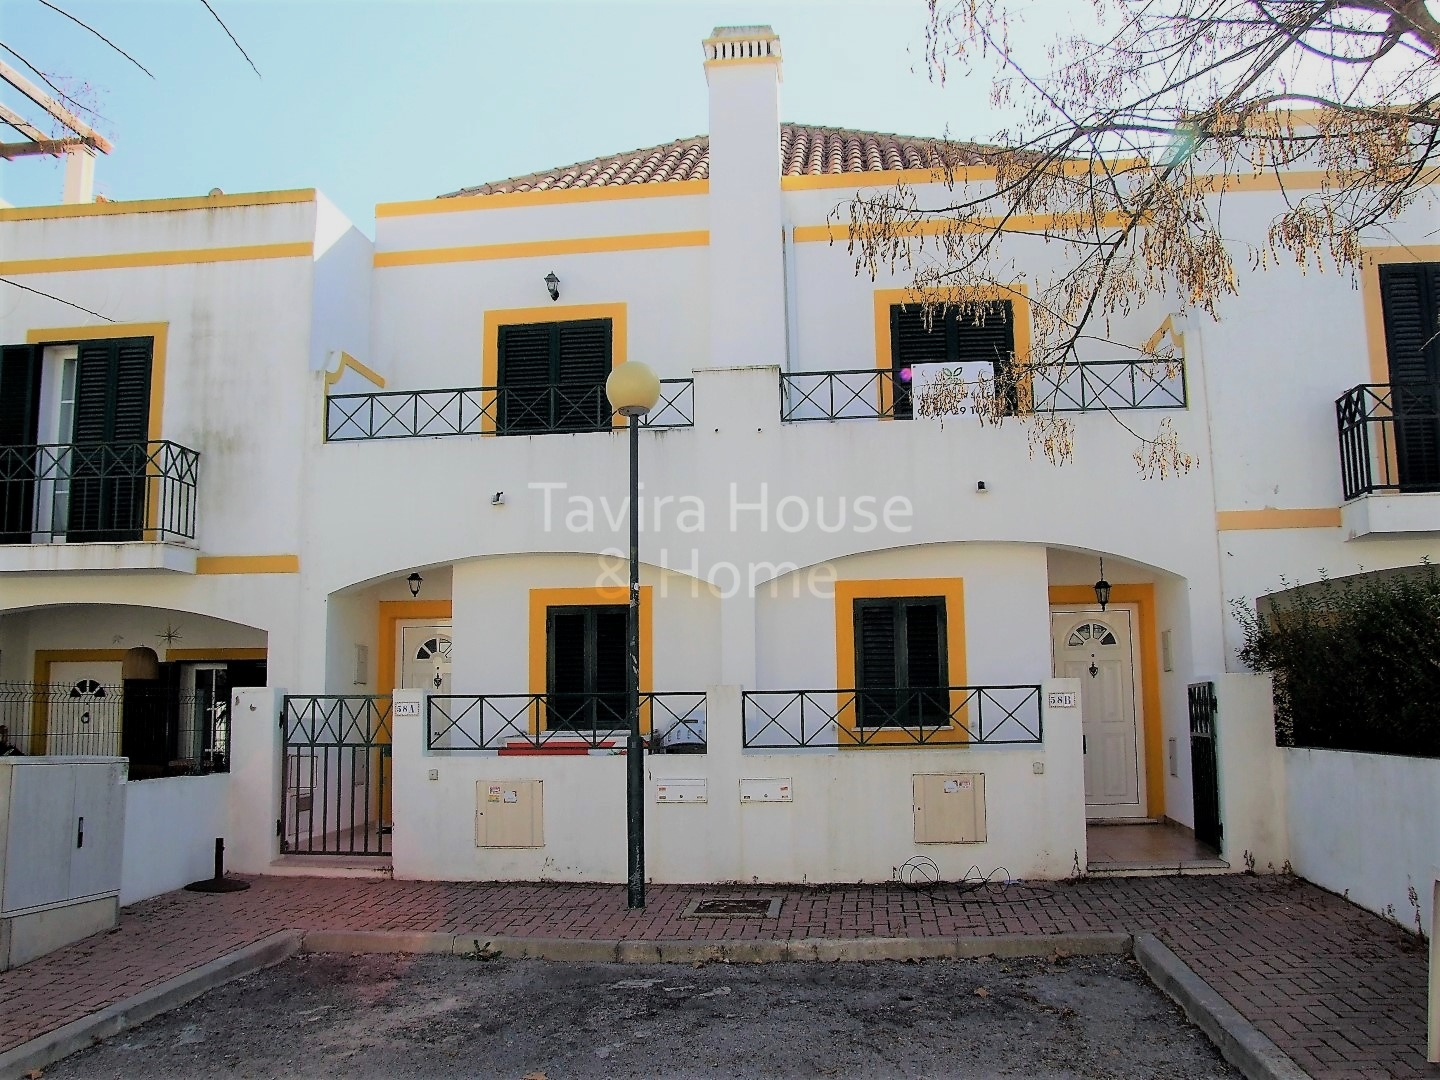 V0522 - 3 Bedroom Townhouse with Patio  Tavira  Portugal